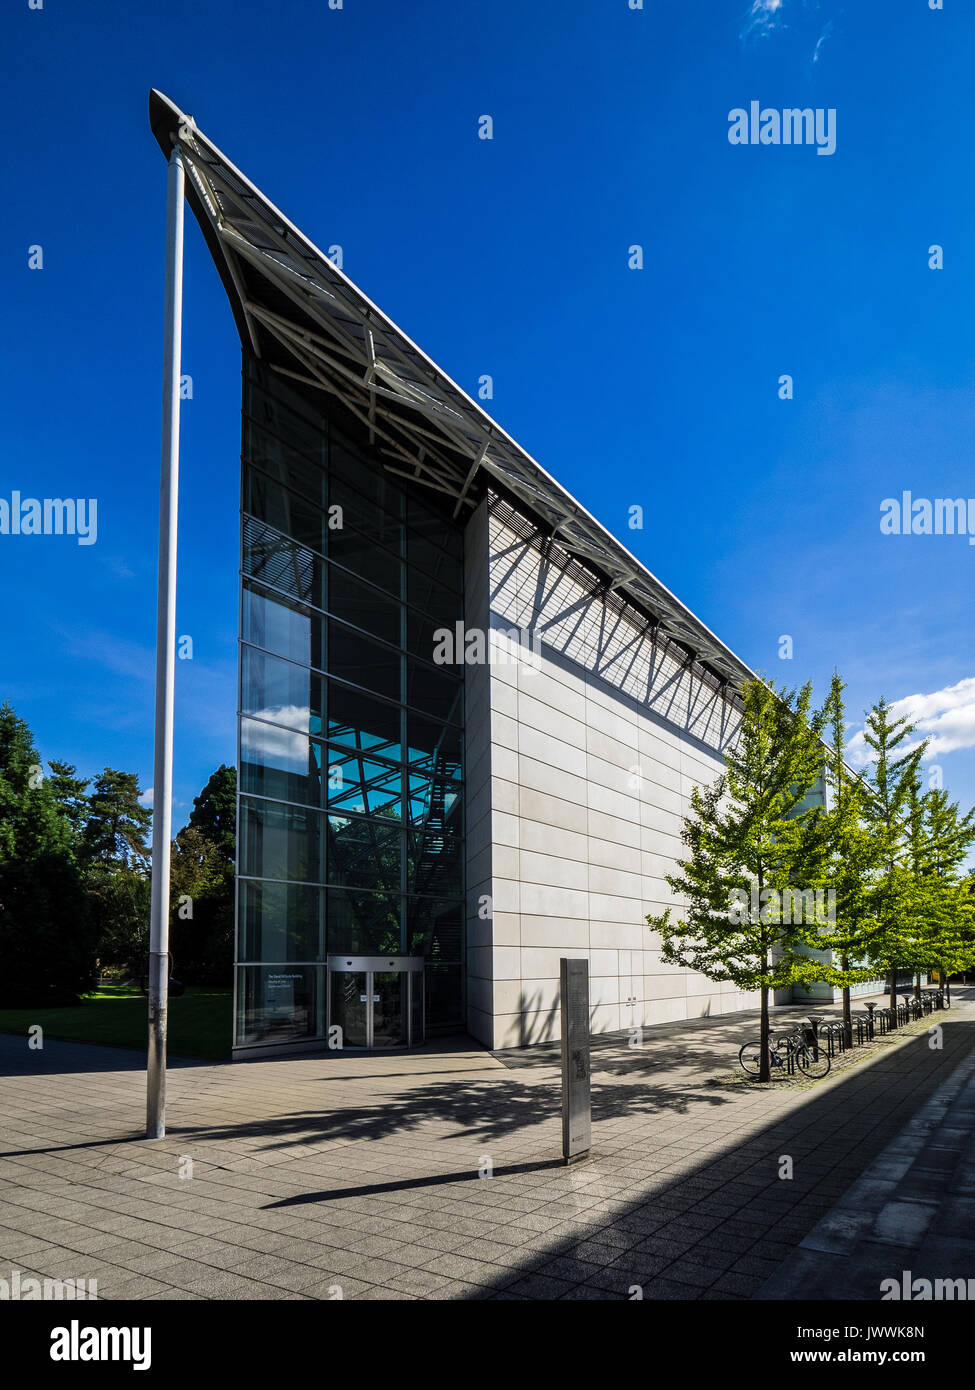 Faculty of Law building, Cambridge University, architects Foster & Partners, completed in 1995. - Stock Image